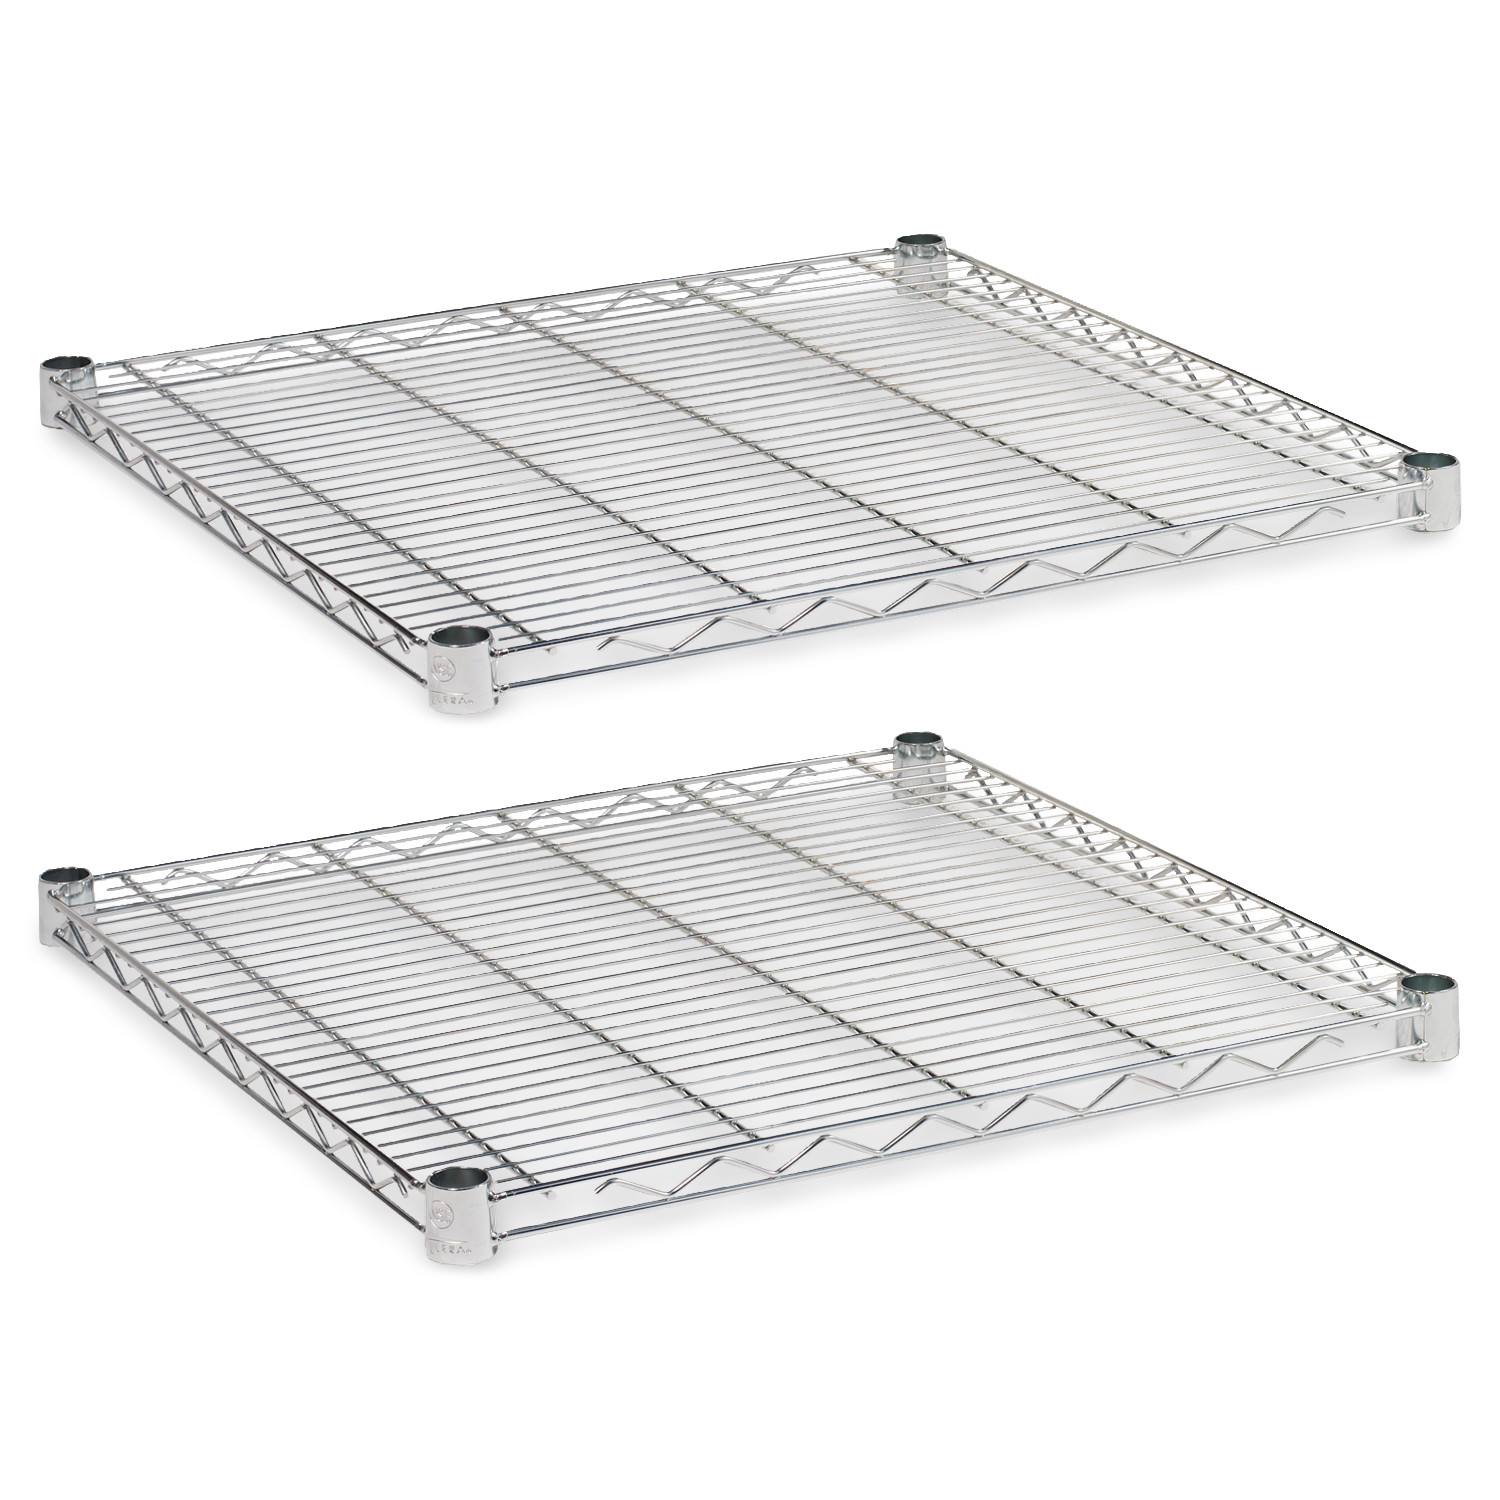 """Alera Industrial Wire Shelving Extra Wire Shelves, 24"""" x 24"""", 2-Pack, Available in Silver or Black"""